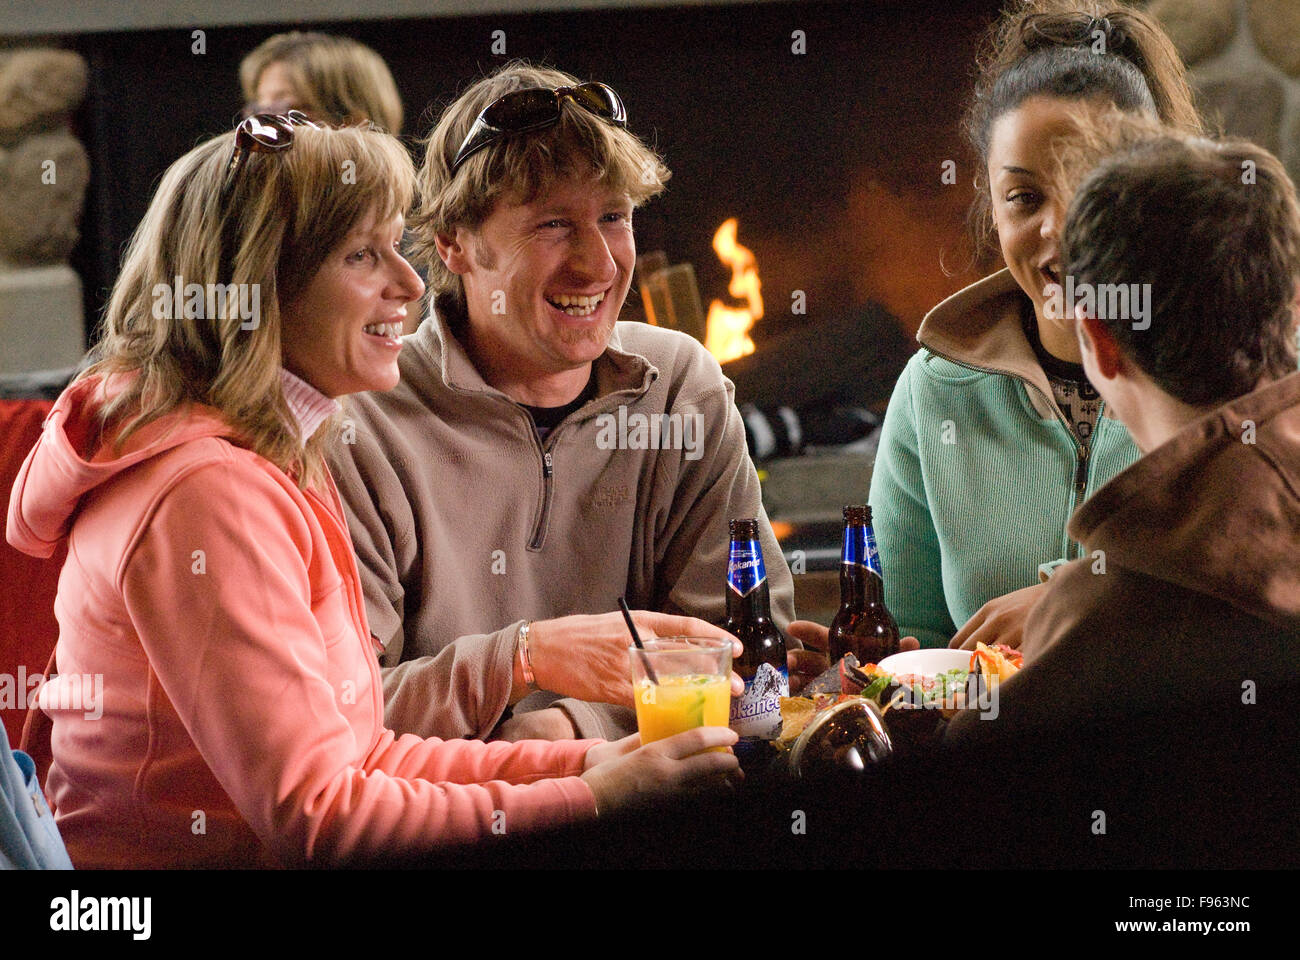 The GLC has been a hot spot for apres ski fun in Whistler, BC Canada - Stock Image